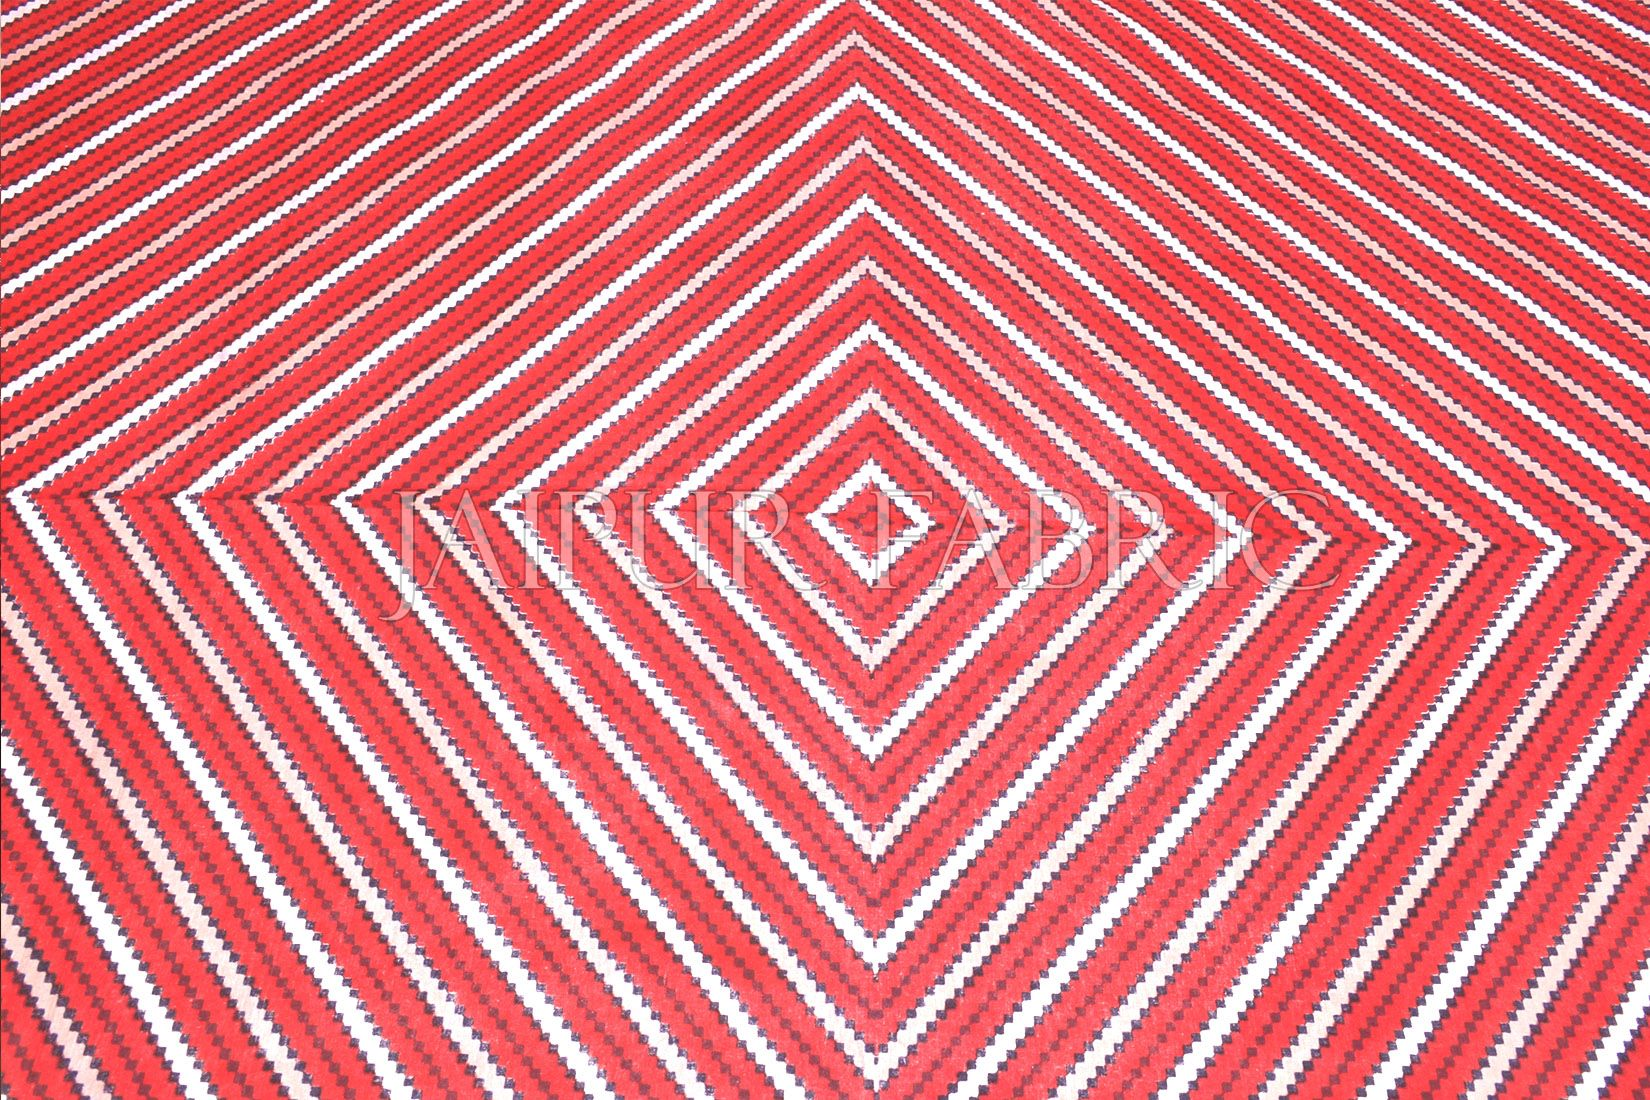 Red Zick Zack Print Double Bed Sheet